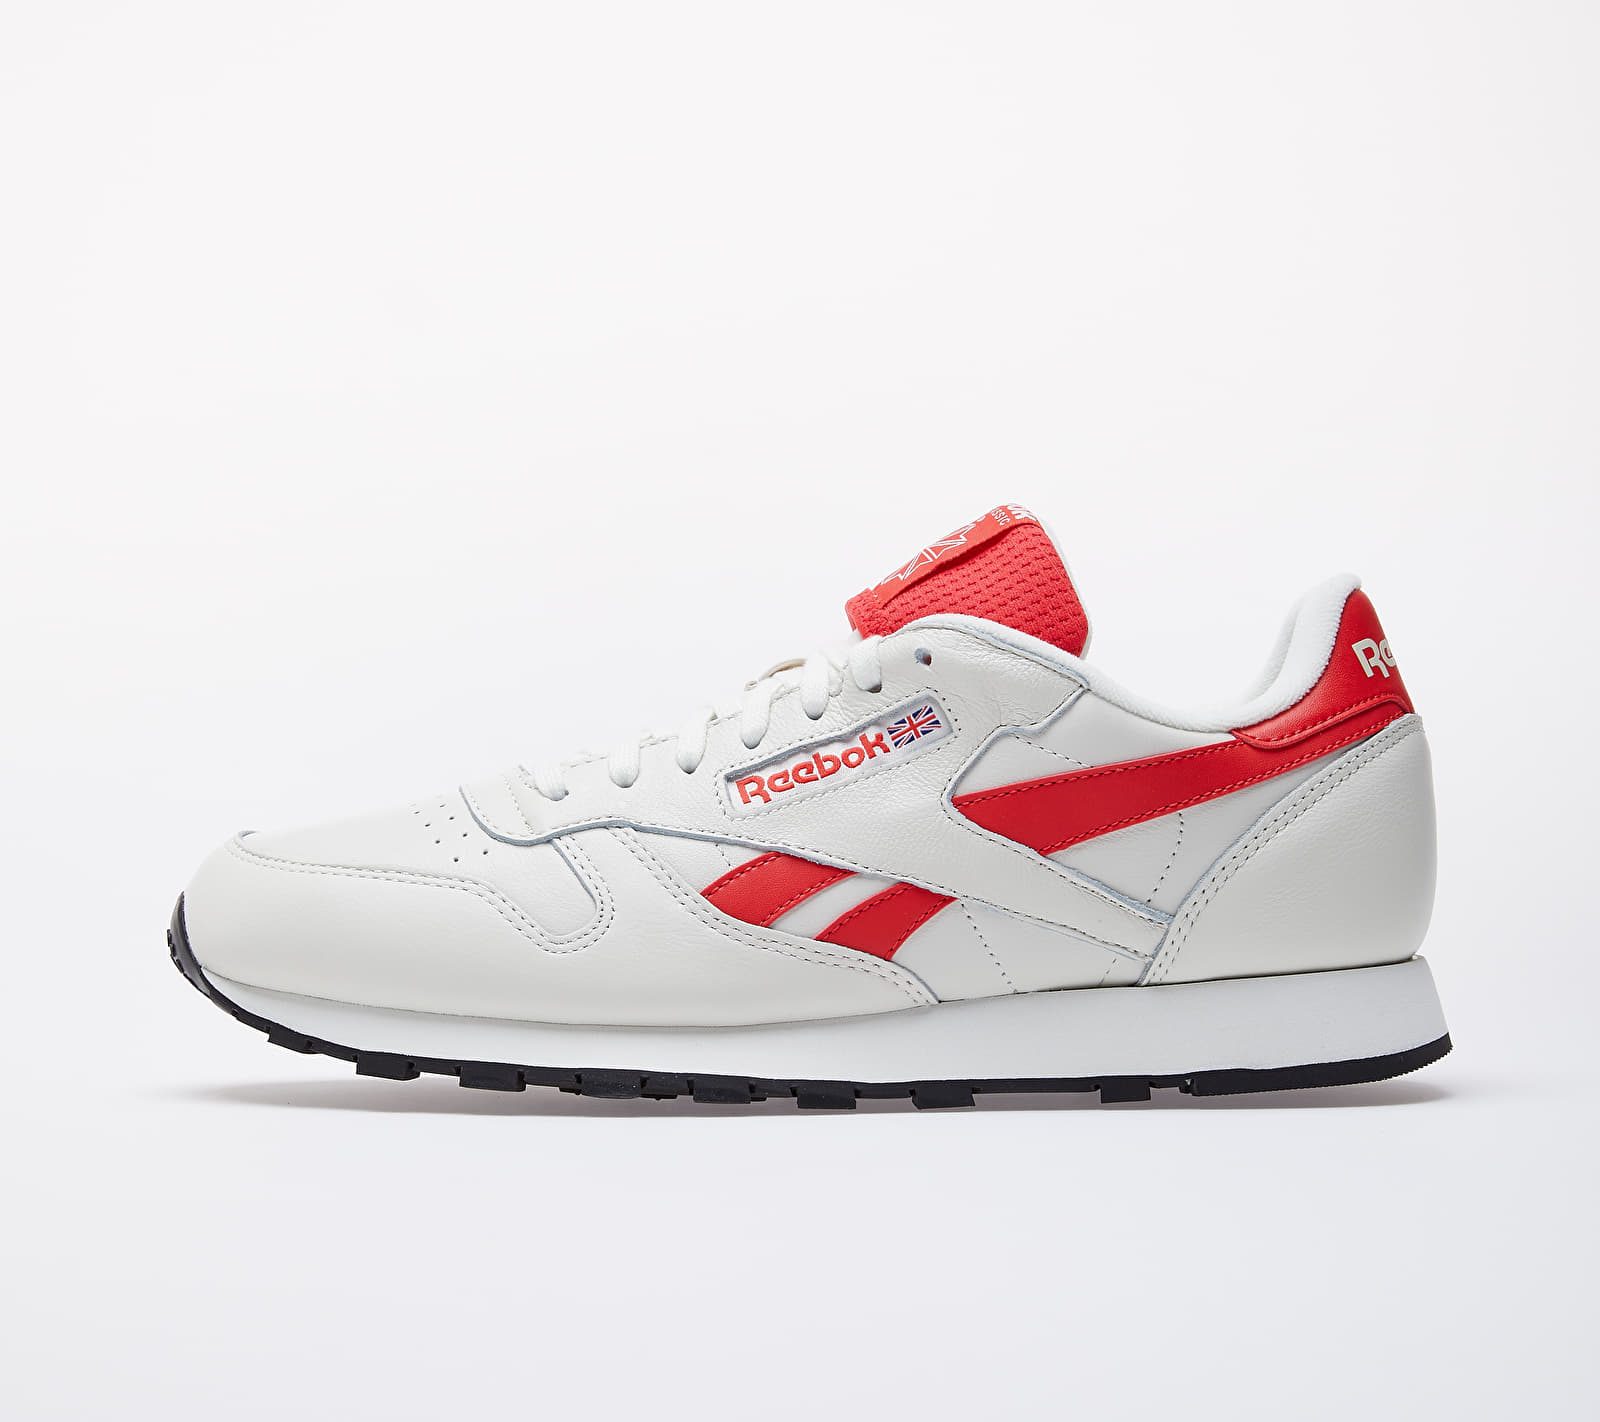 Reebok Classic Leather MU Chalk/ Radiate Red/ Black EUR 42.5